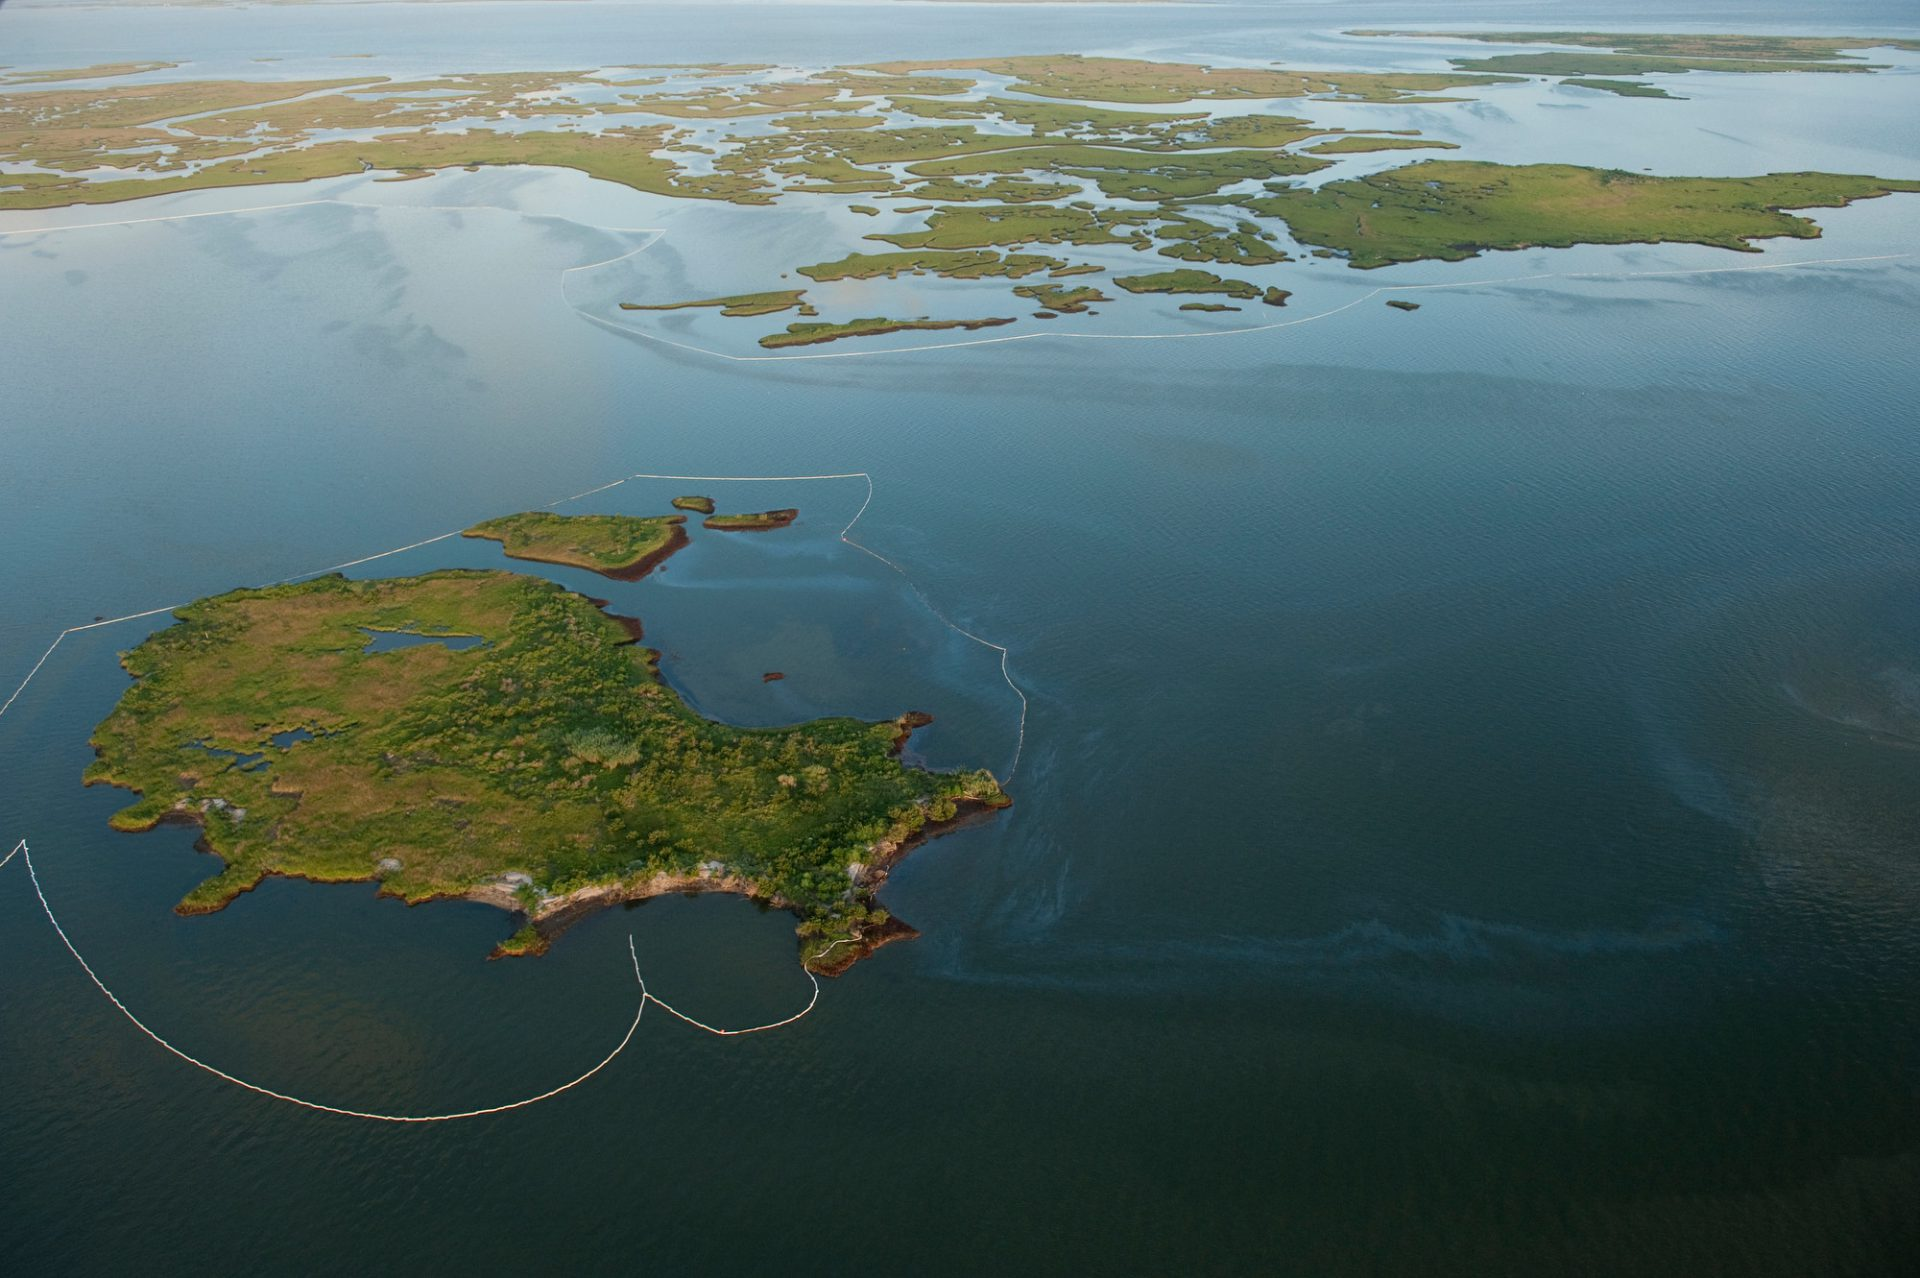 Photo: Aerial view of the oil booms deployed around Queen Bess Island in an attempt to protect it from the Deepwater Horizon spill.